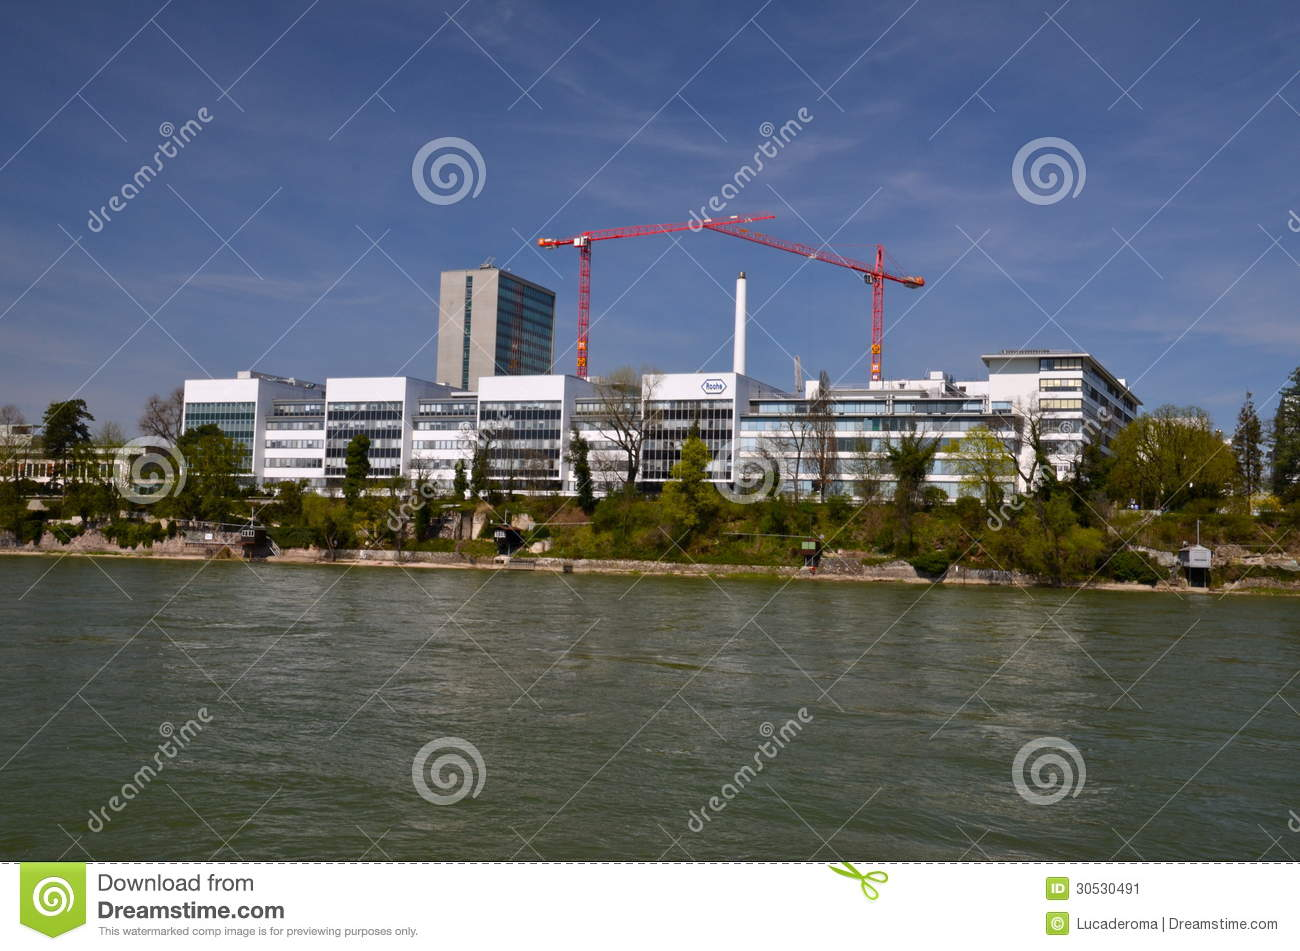 global business project on switzerland Gbp has a comprehensive network of offices, representatives, partners and suppliers in: emea region (austria, czech republic, egypt, france, germany, greece, israel.